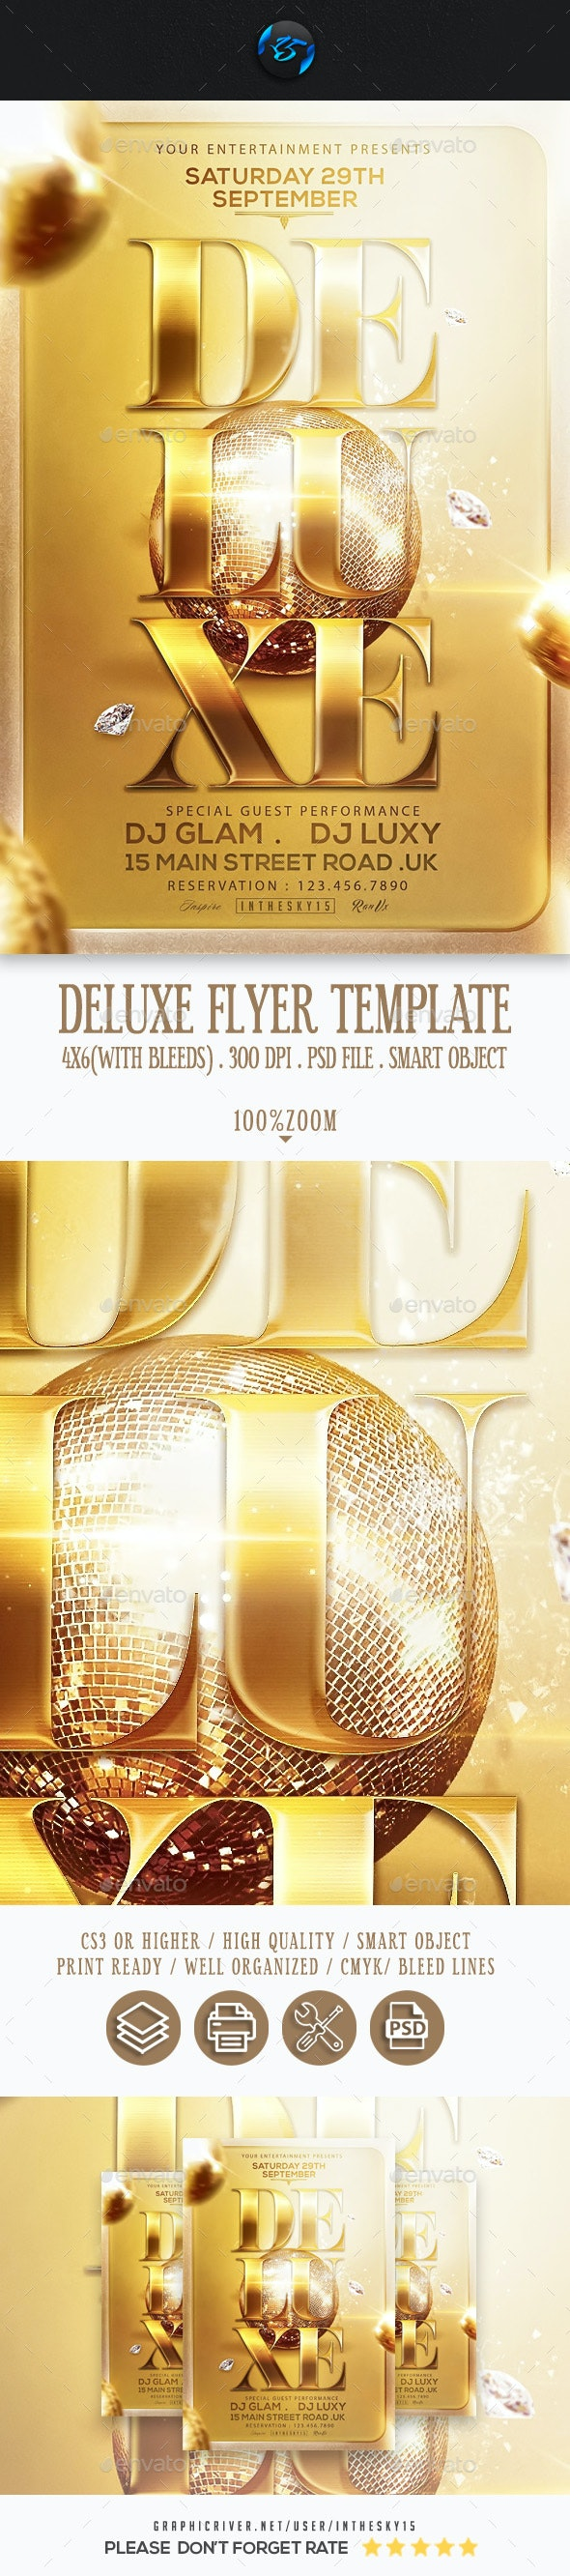 Deluxe Flyer Template - Events Flyers